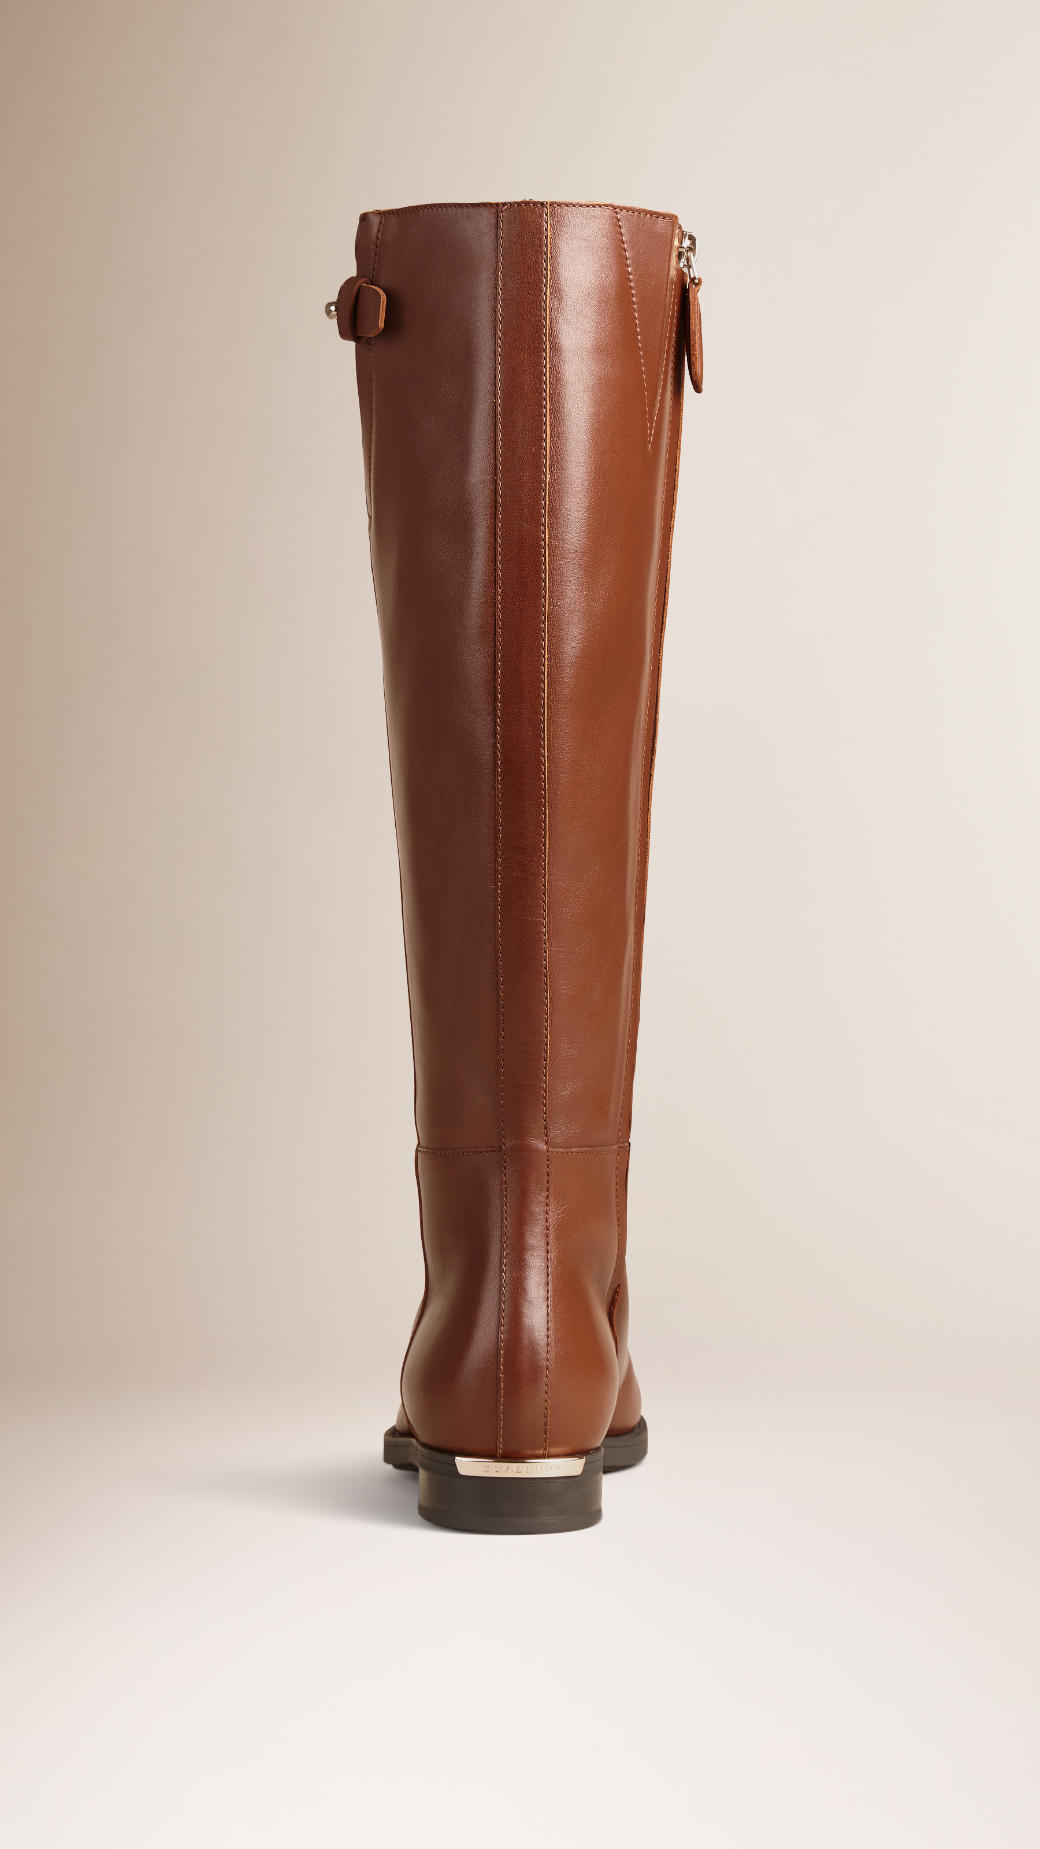 burberry house check trim leather boots in